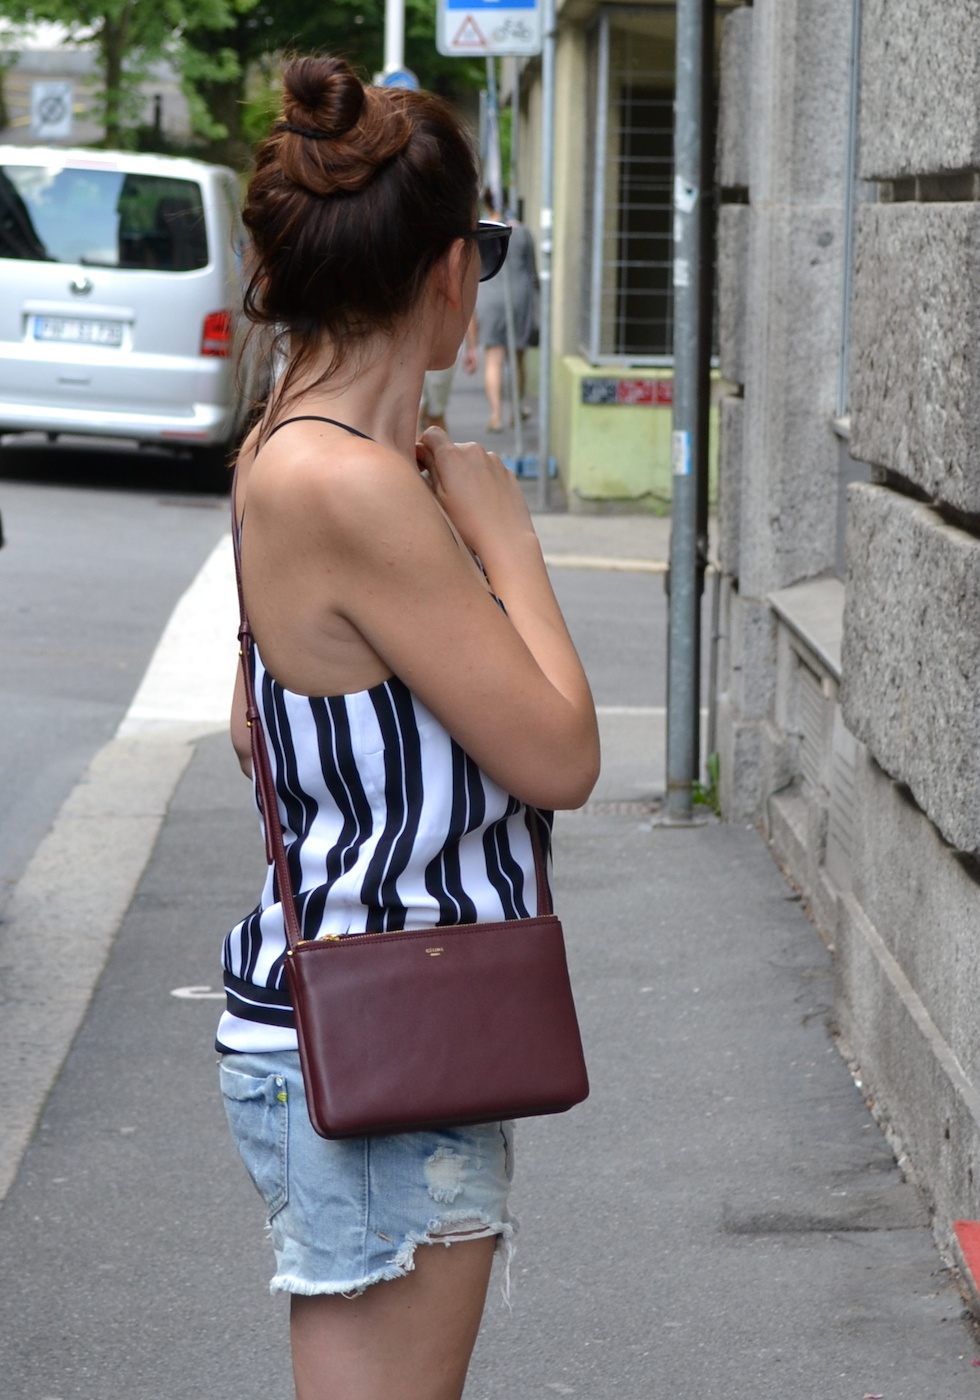 zerrissene Shorts, Streifenshirt, fashion blog schweiz